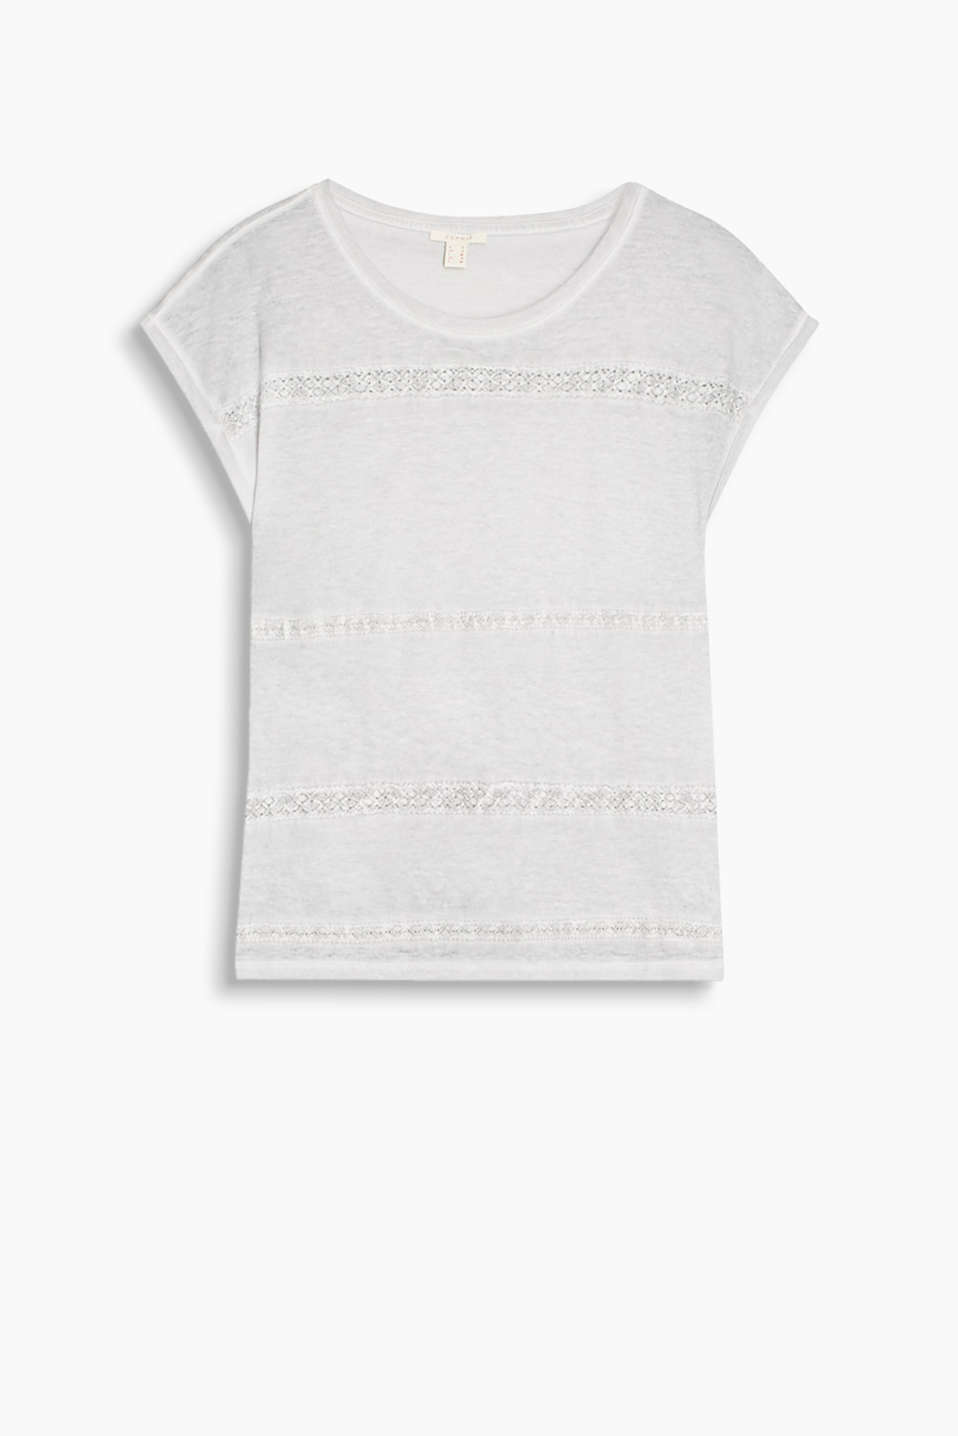 Cool linen blend T-shirt in a trendy wash with appliquéd lace trims